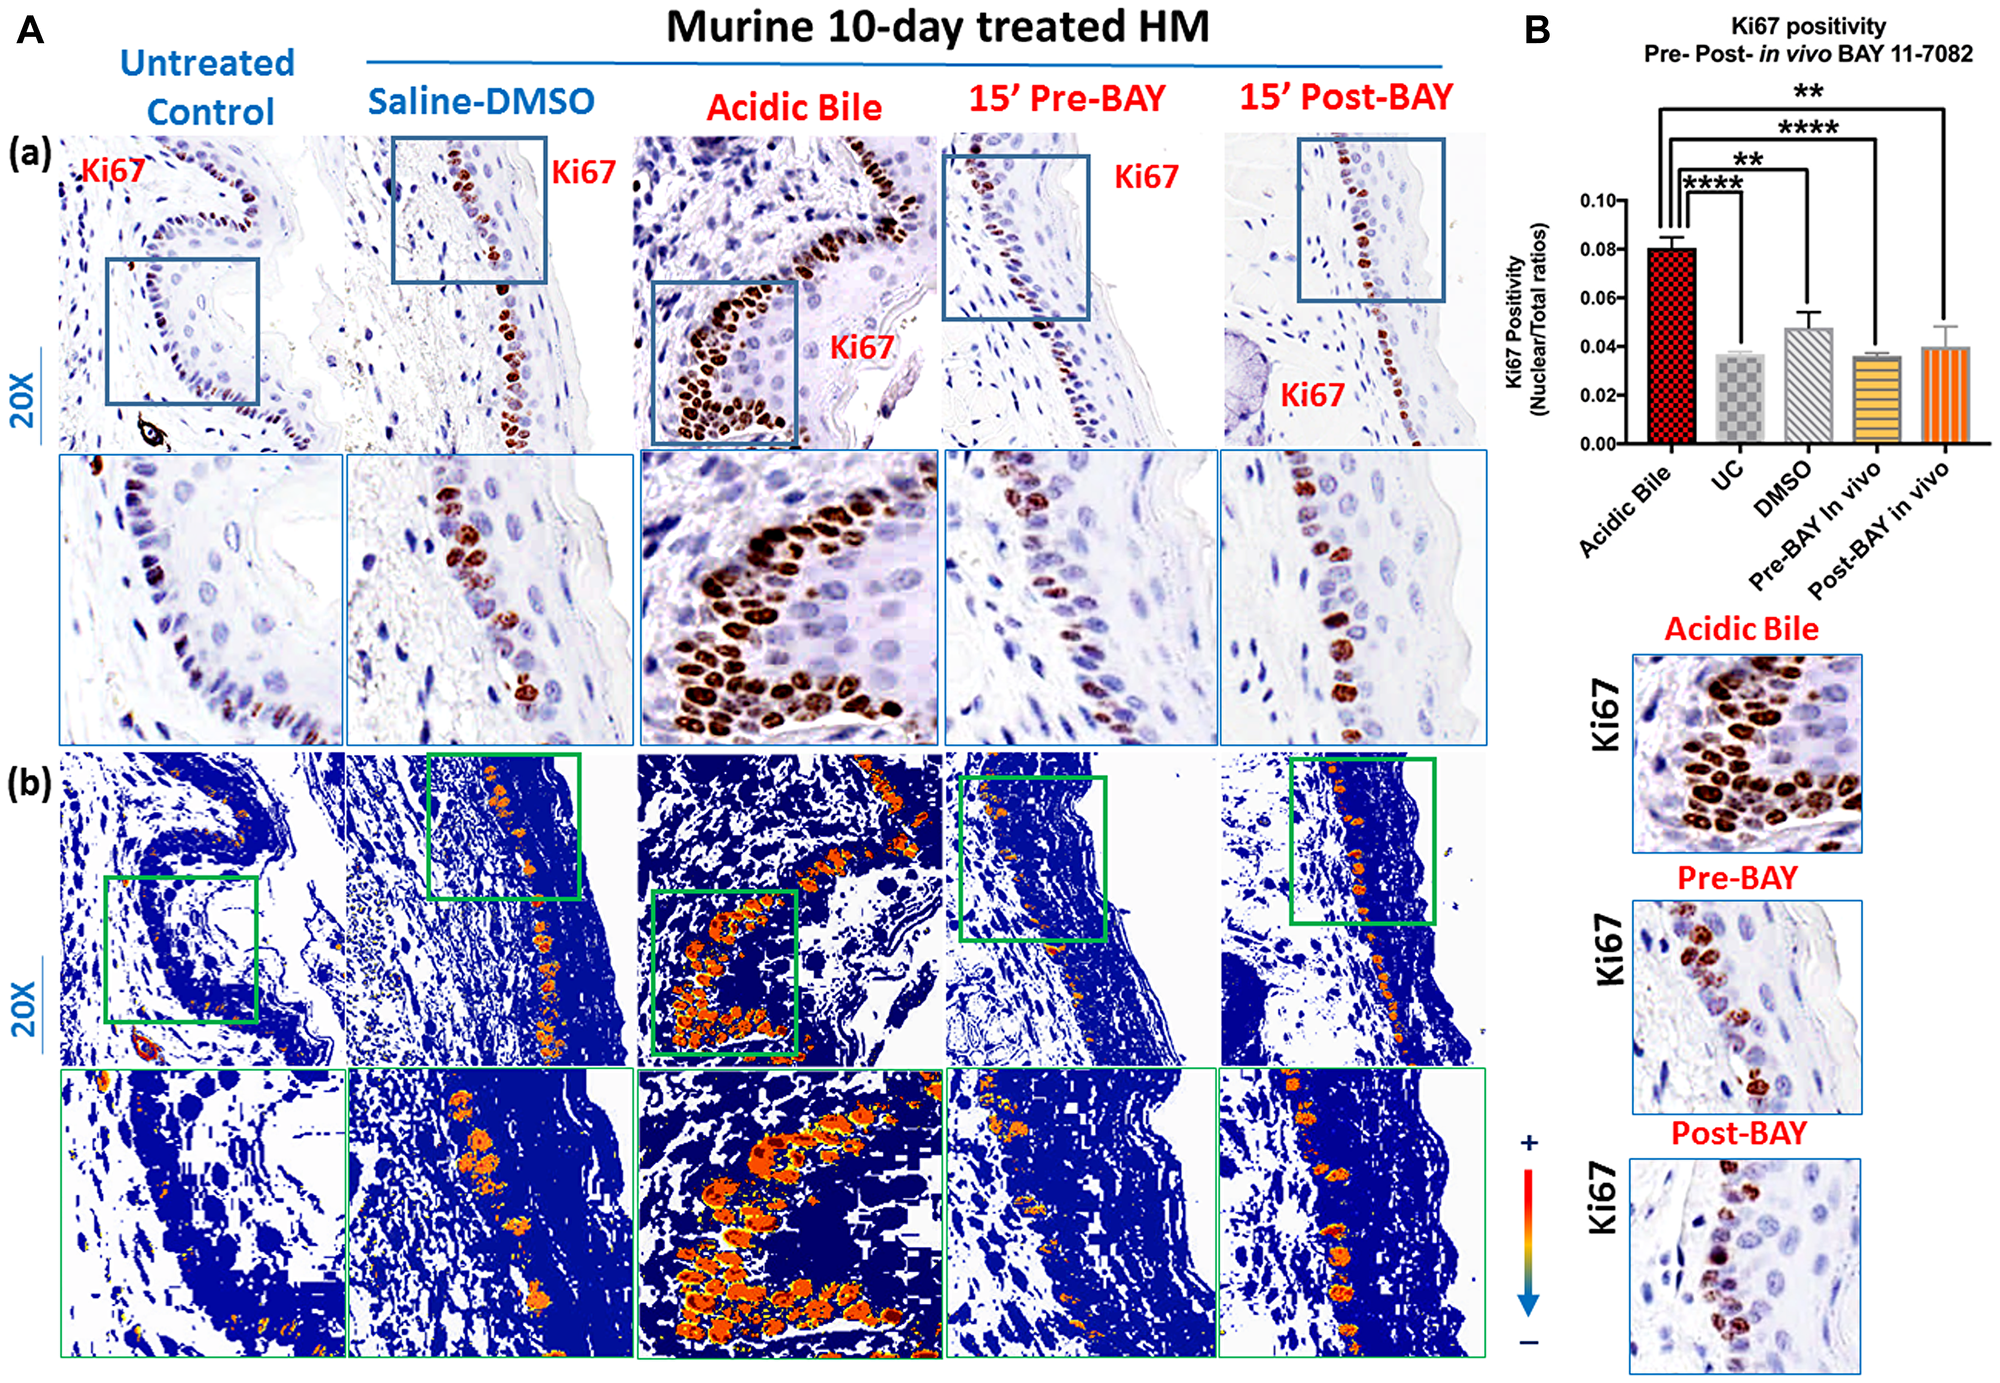 In vivo topical pre- or post-application of BAY 11-7082 prevents acidic bile-induced cell proliferation markerKi67 in 10-day exposed murine HM.